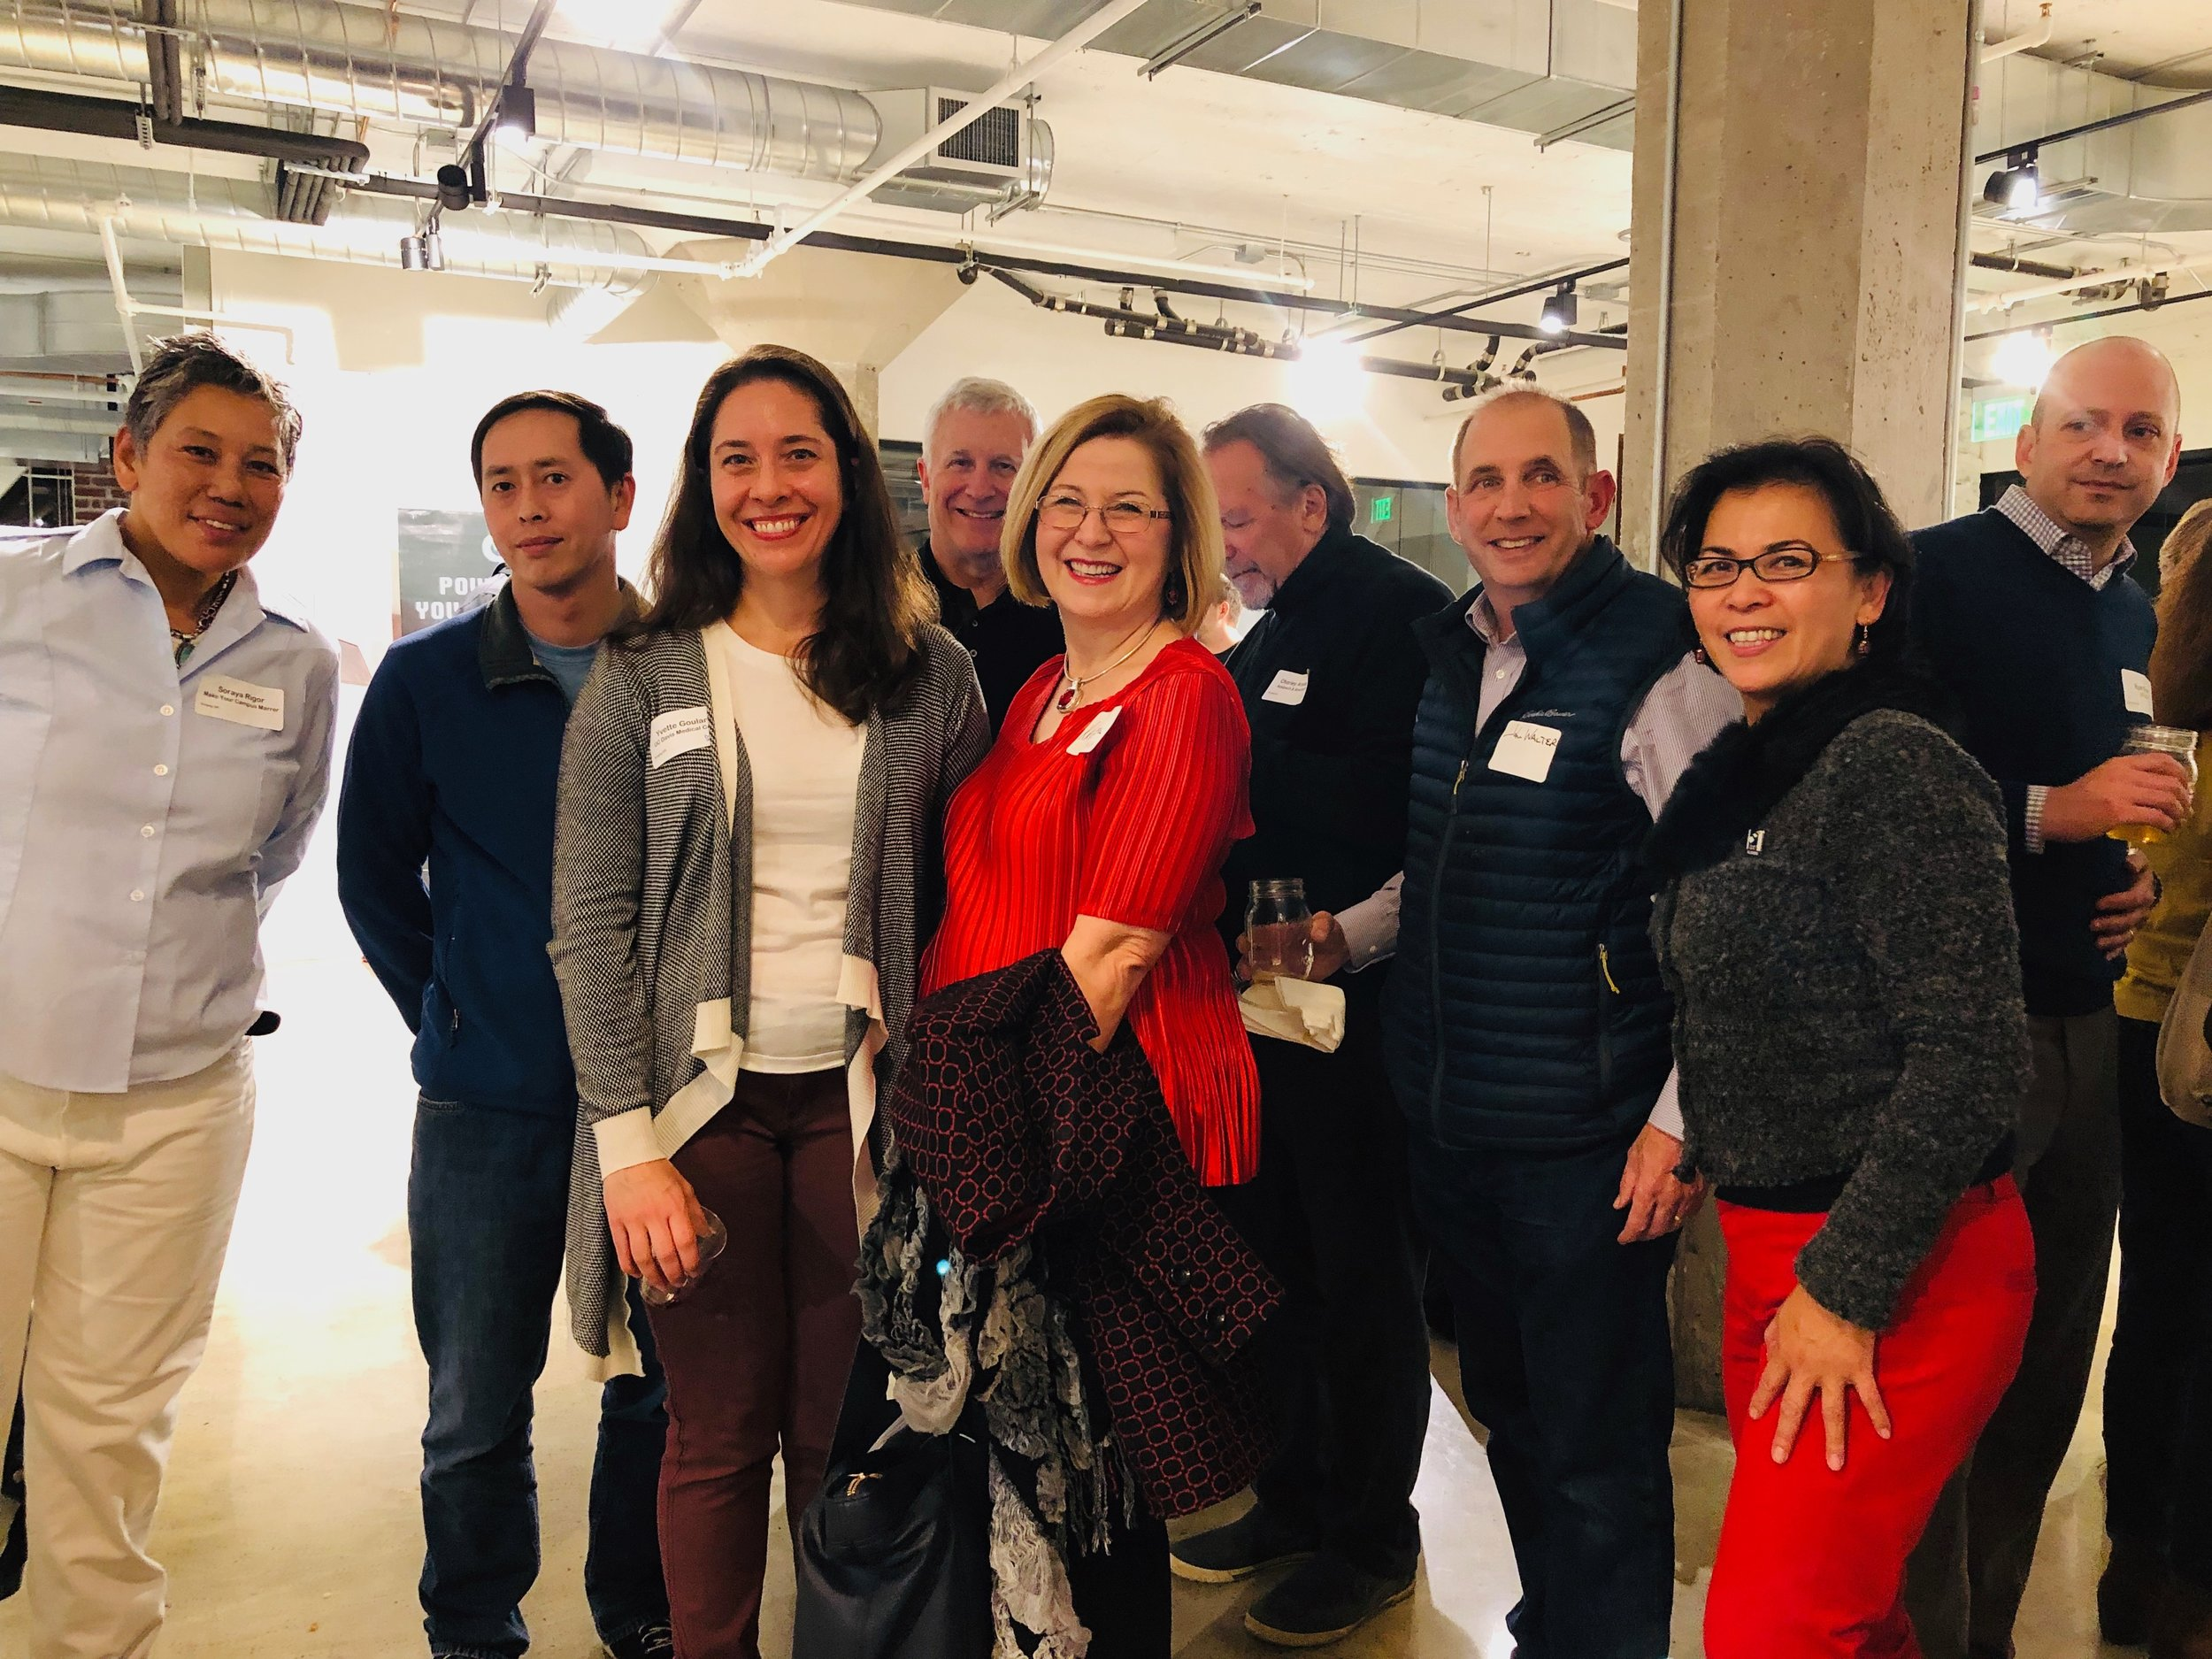 SEA Alumni ( Syta Saephan of Notifii ,  Christy Serrato of Pair Anything/SEA ) and Board Emeriti  Bob Gregoire of CxORE  and  John Walter of Repower Yolo ) welcomed  incoming 2019 Fellows    Kris Lea and Yvette Goularte